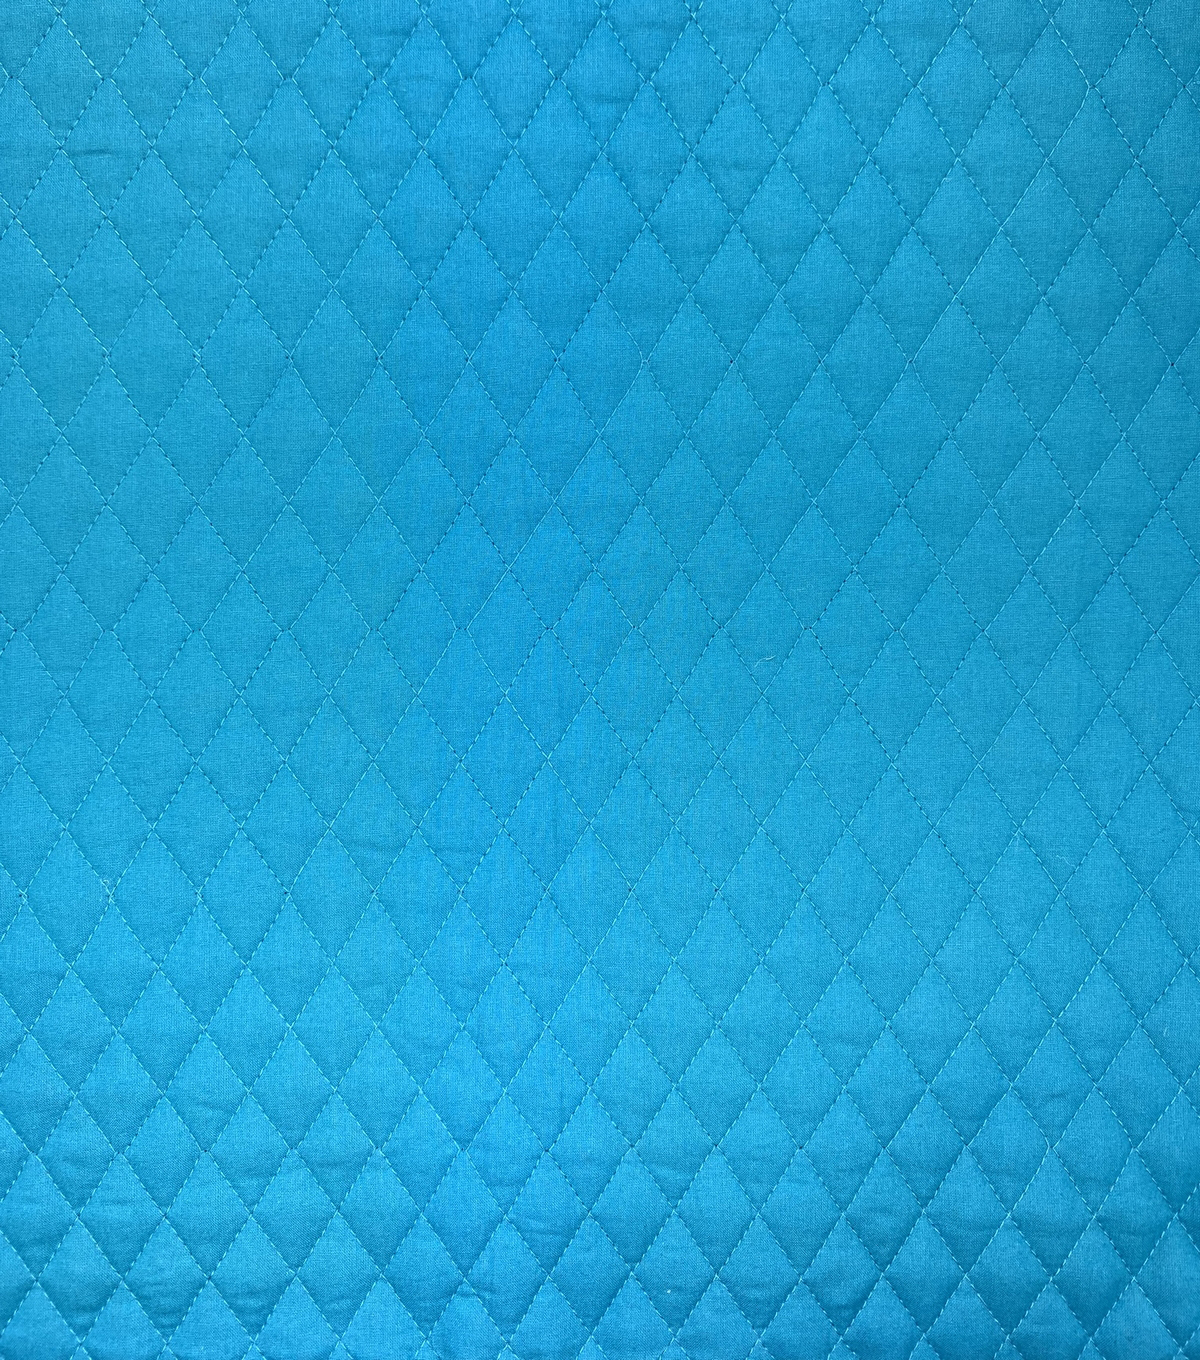 Double Faced Pre-Quilted Cotton Fabric -Diamond Solids, Dark Teal